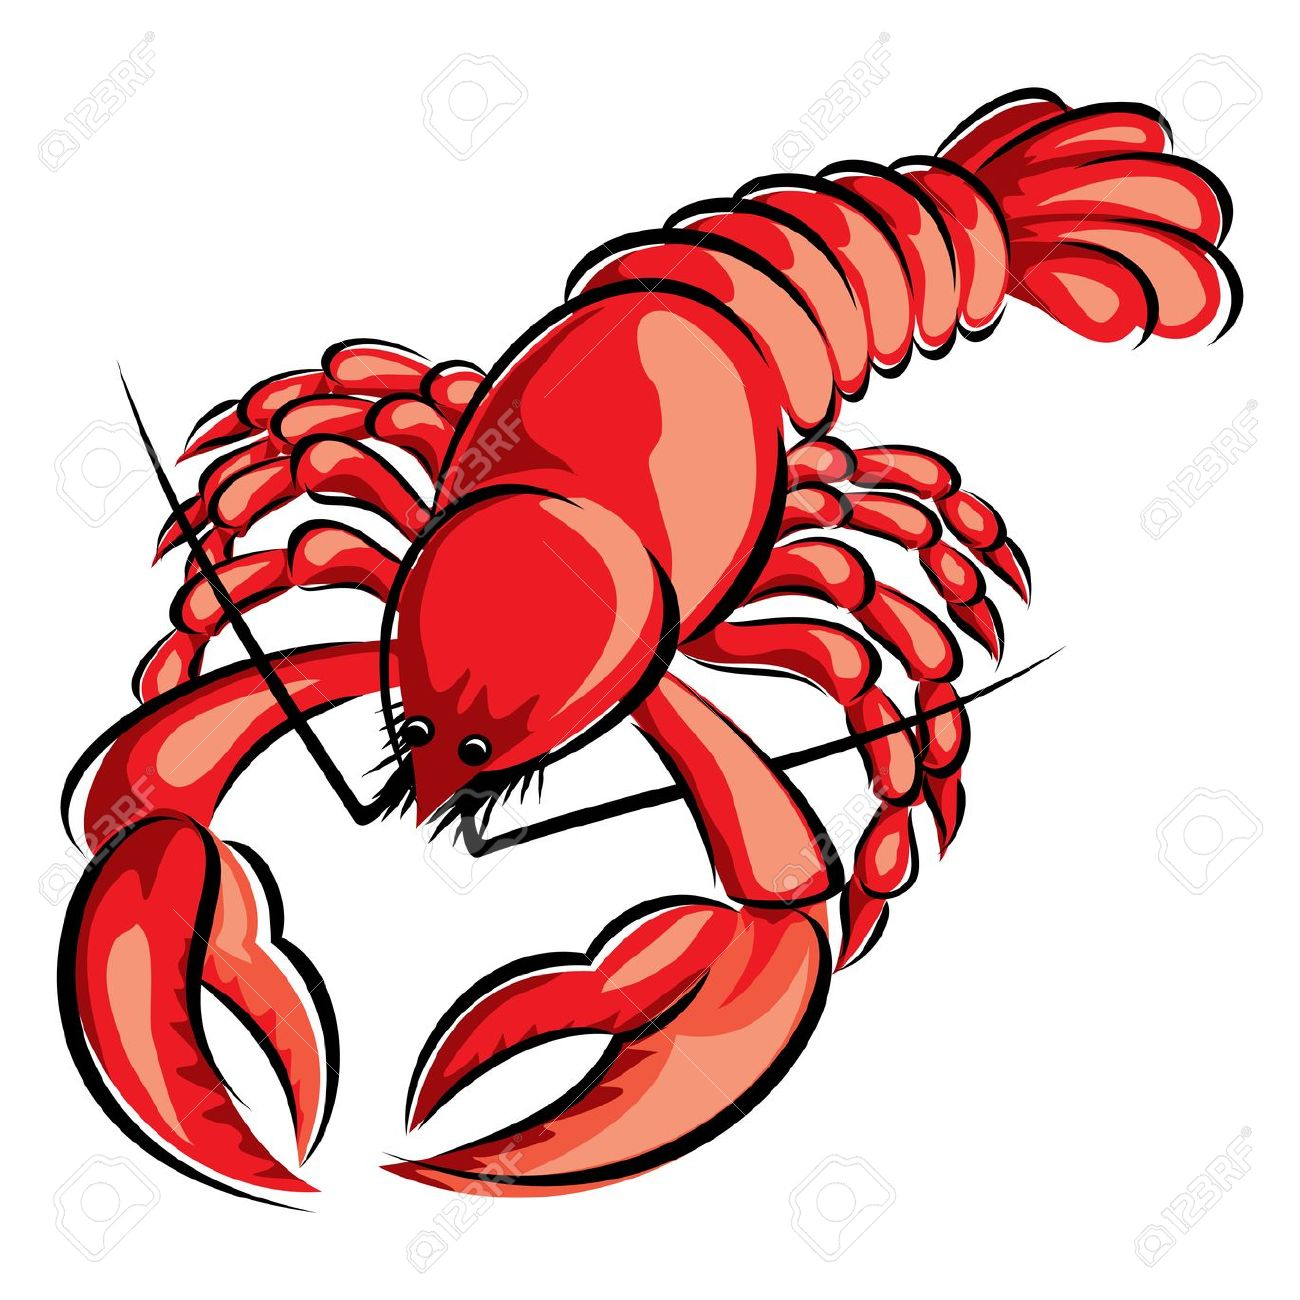 Animated lobster clipart.